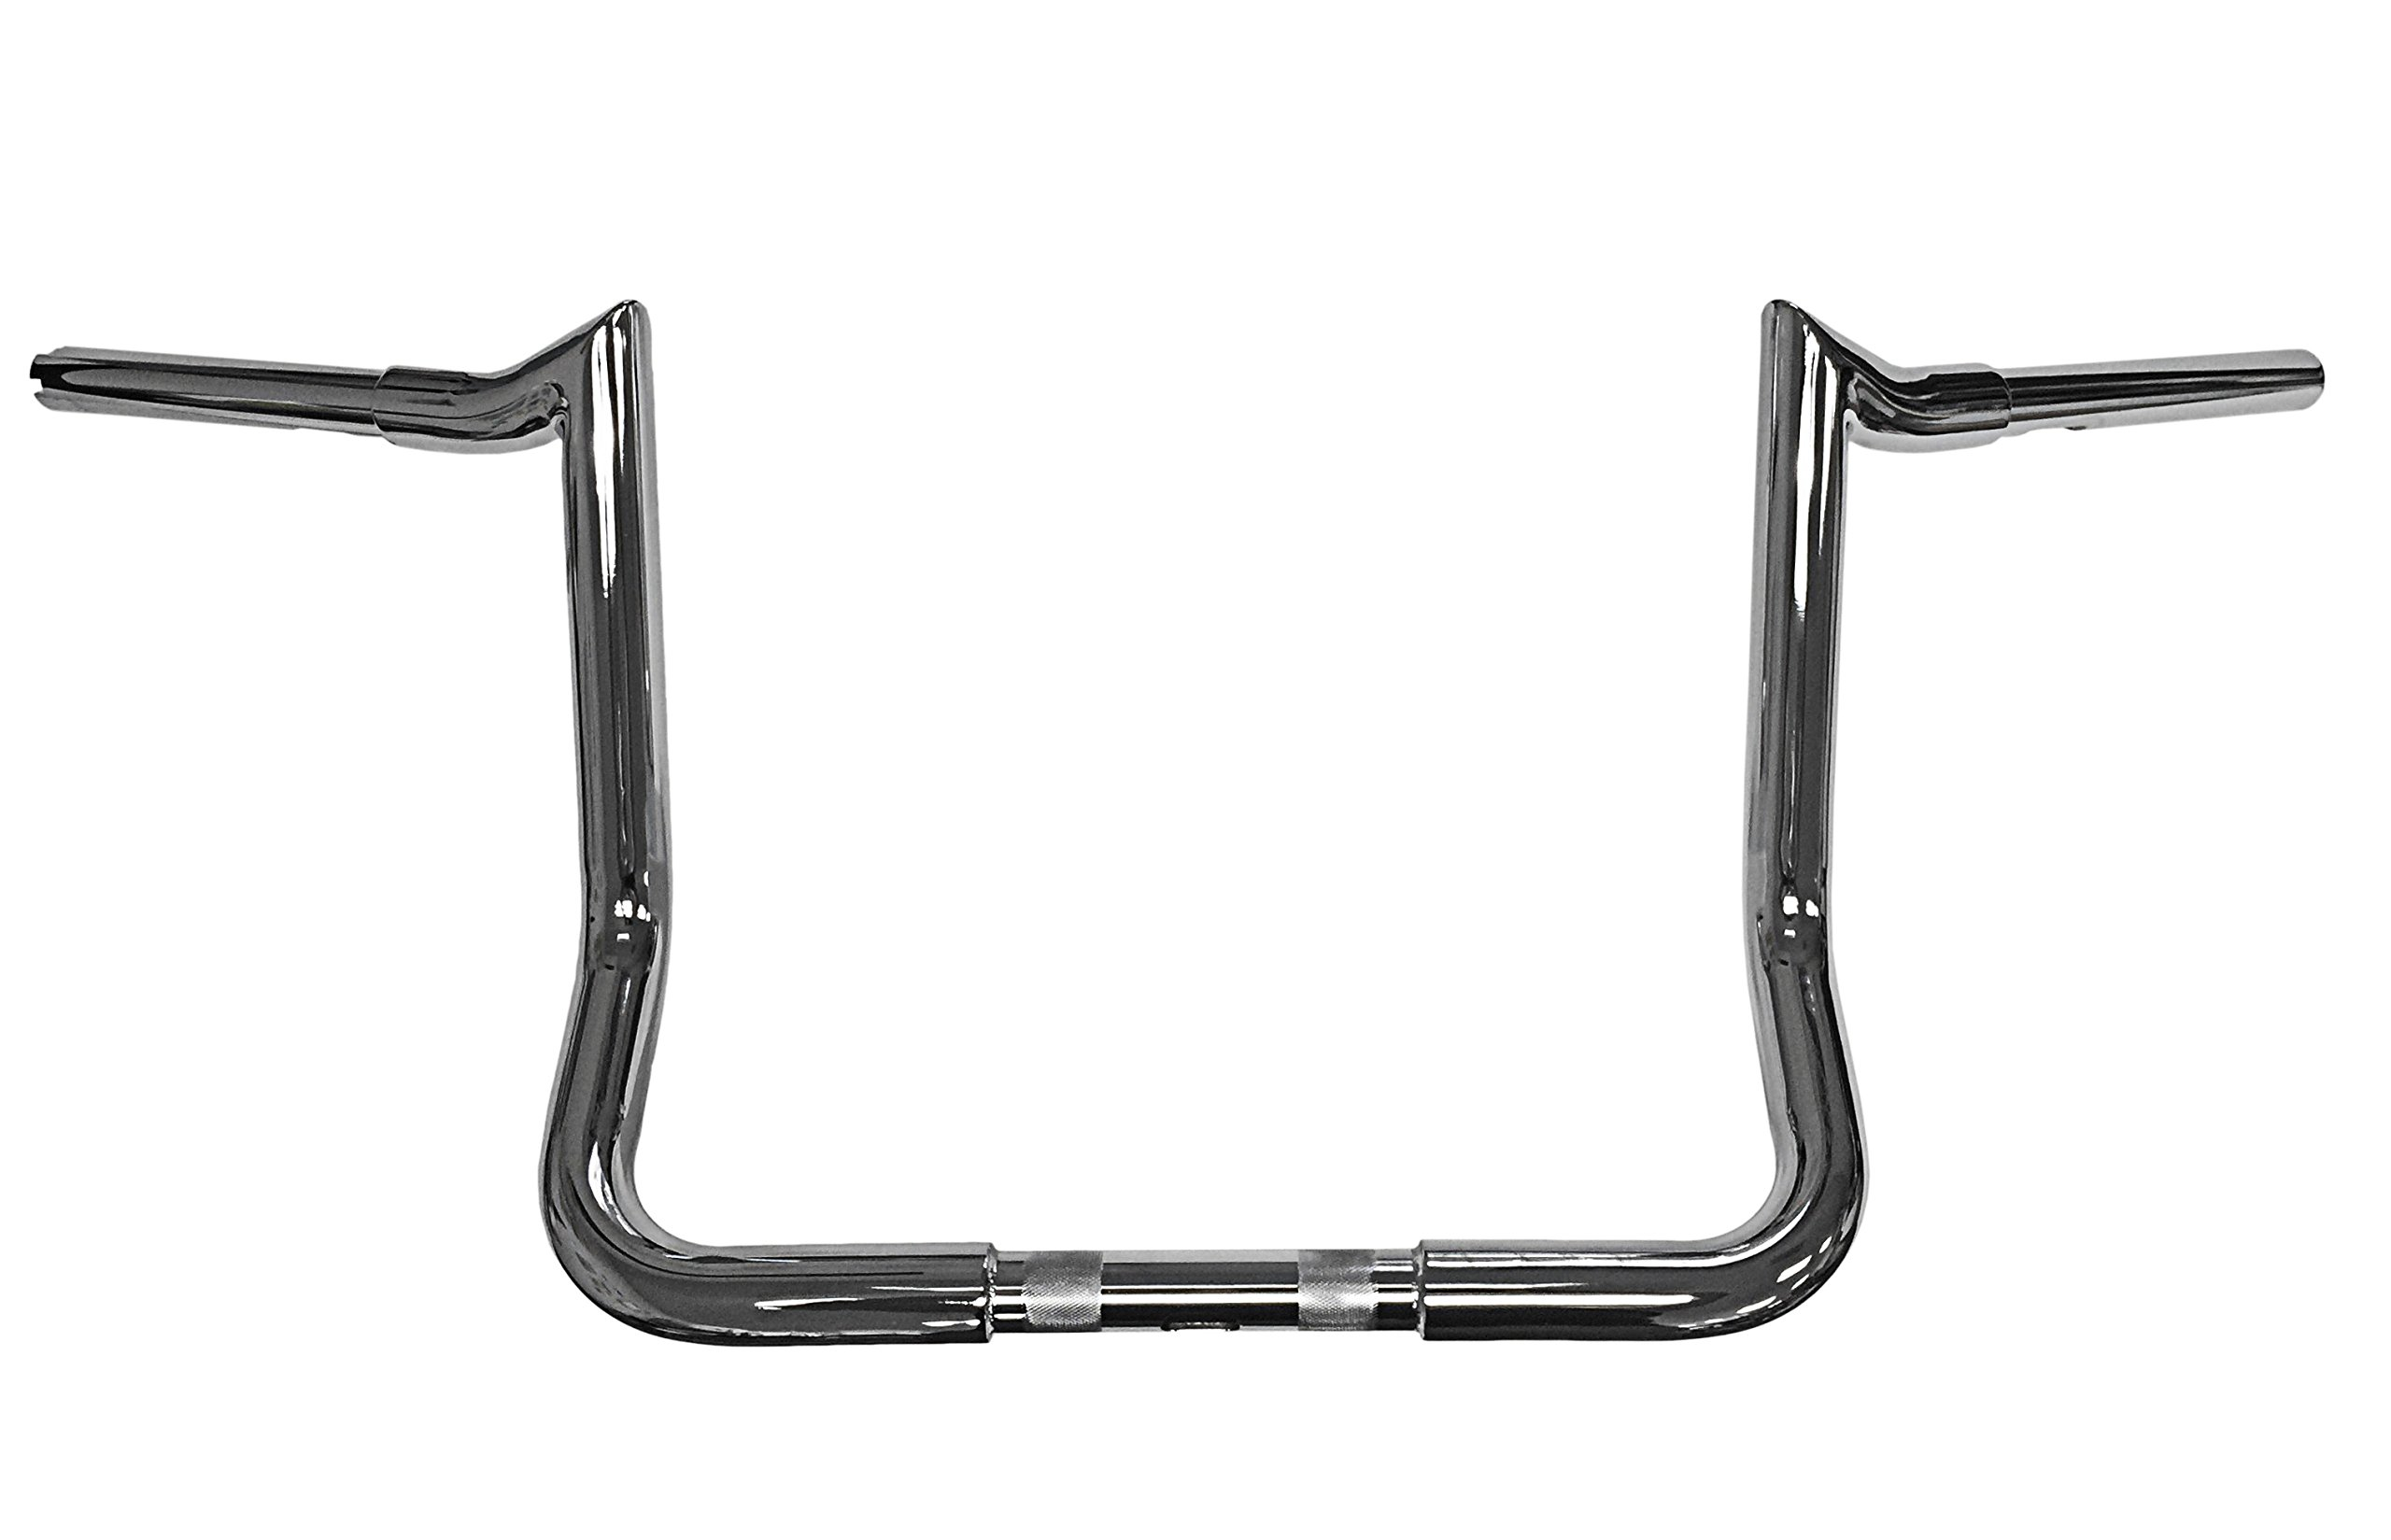 Dominator Industries 1 1/4'' Chrome 13'' Meathook Monkey Bar Ape Hangers Handlebars 1996-2018 Harley-Davidson Bagger Electra & Street Glide wABS BC-HC-BB16GB-ESG08-ABS-BC